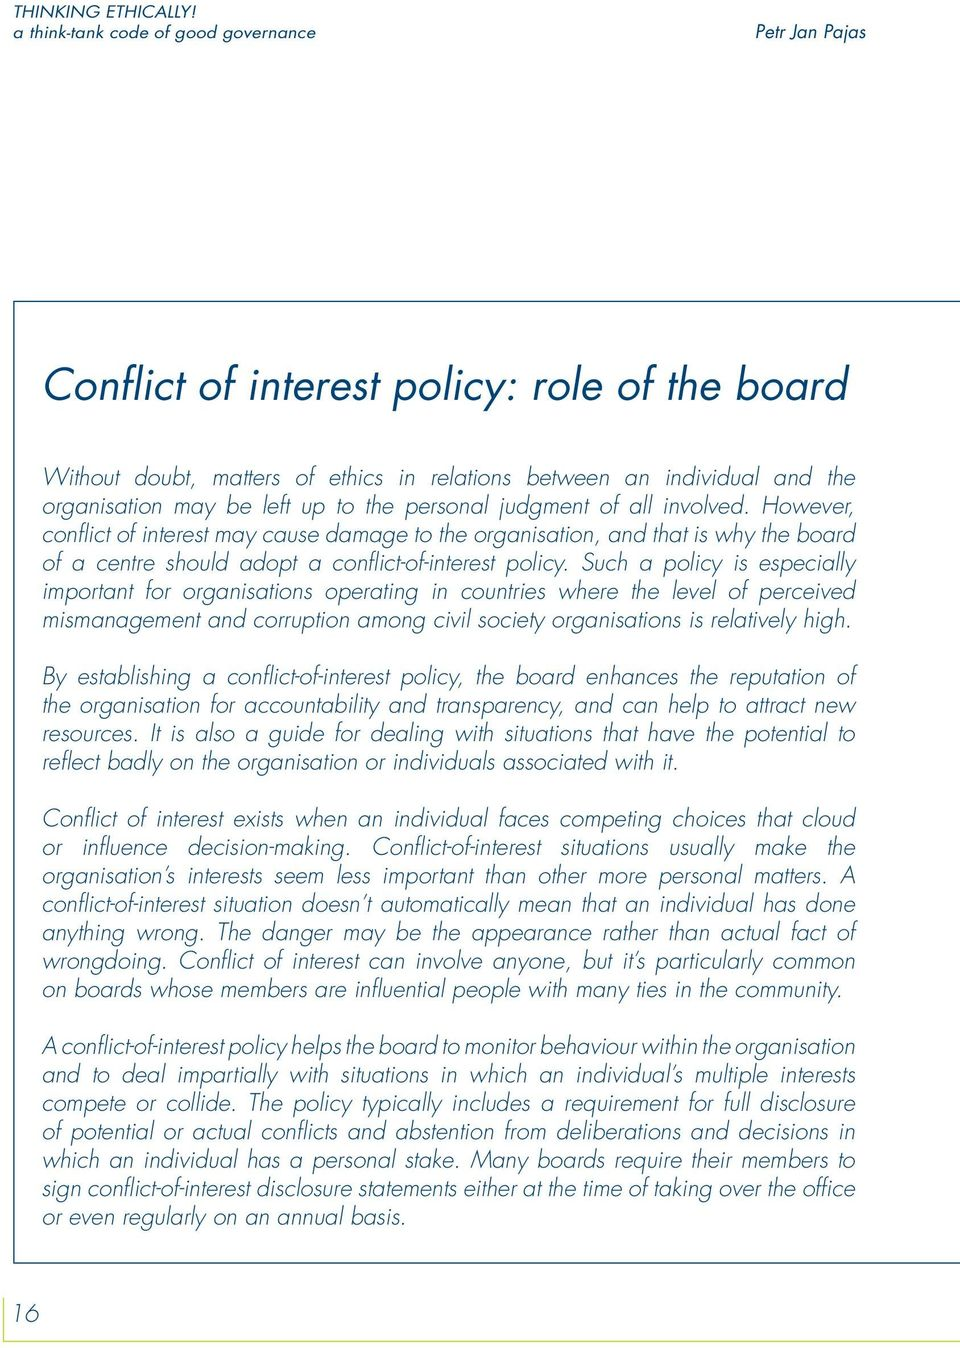 up to the personal judgment of all involved. However, conflict of interest may cause damage to the organisation, and that is why the board of a centre should adopt a conflict-of-interest policy.